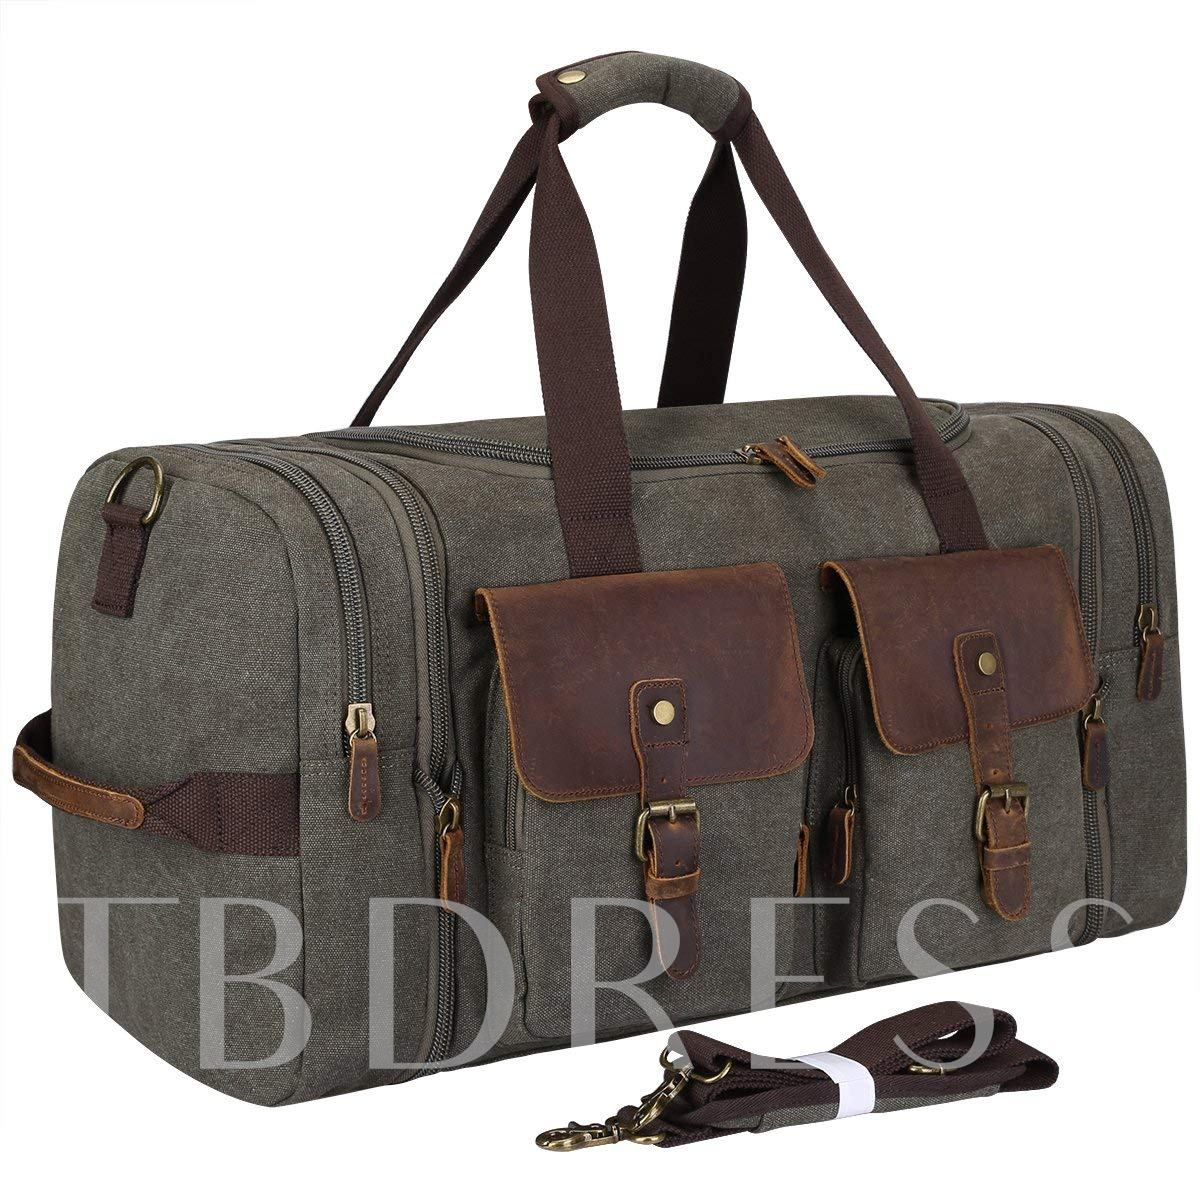 Huge Space Belt Decorated Men's Travel Tote